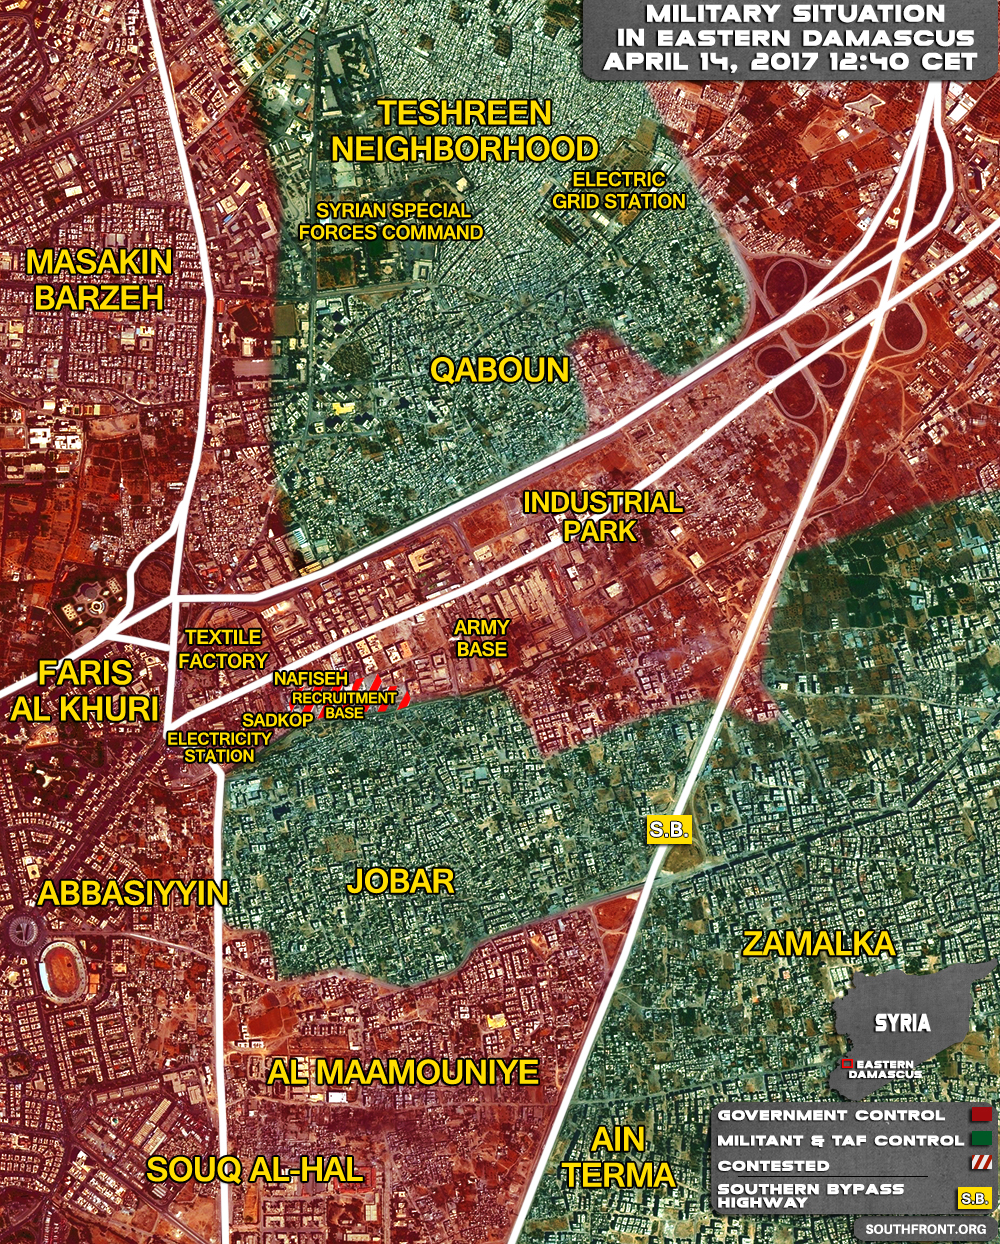 Military Situation In Jobar Area In Eastern Damascus On April 14, 2017 (Map Update)